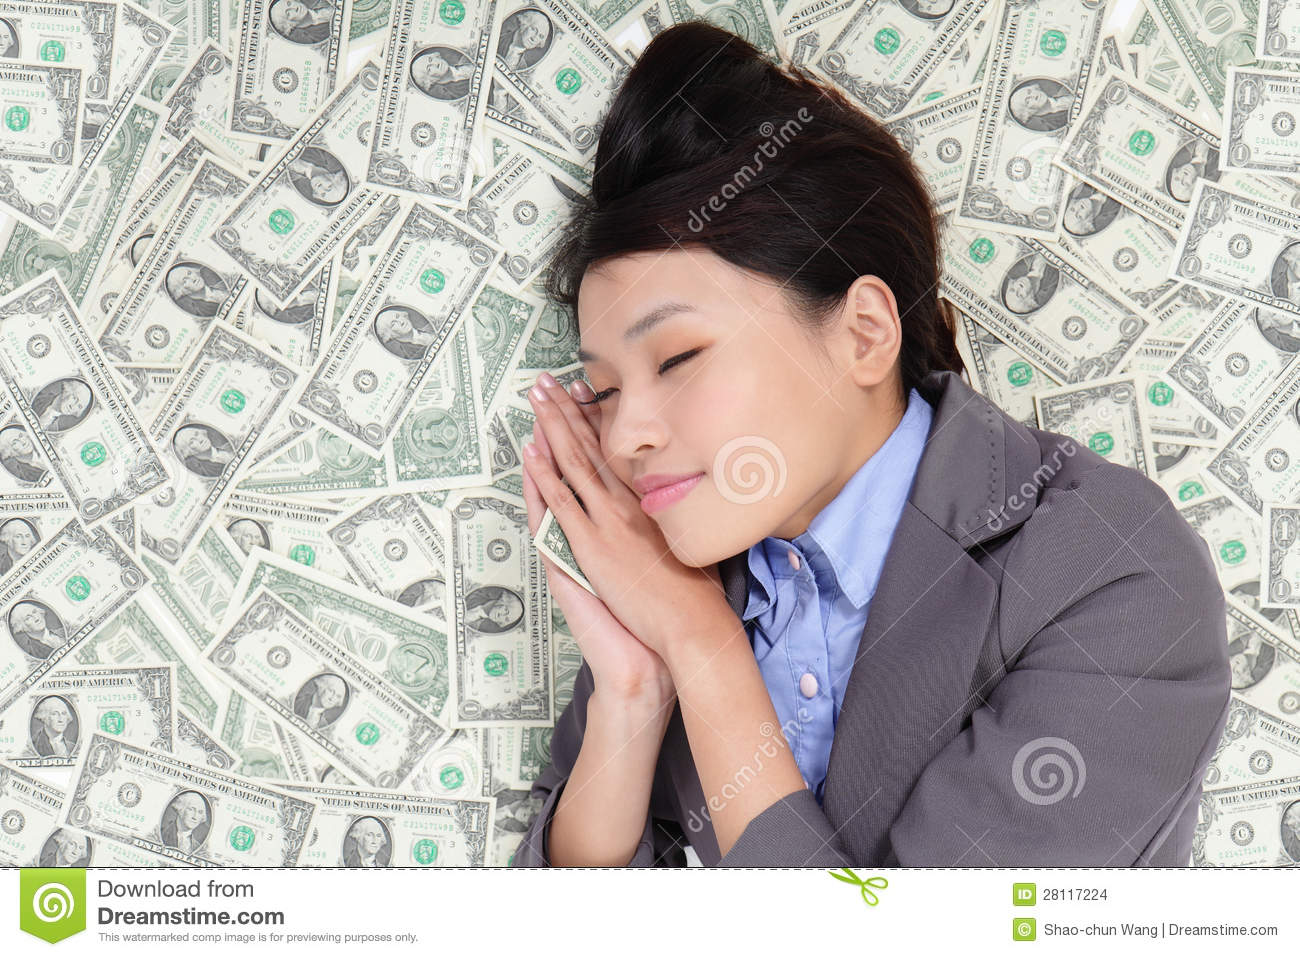 business-woman-sleeping-money-bed-281172